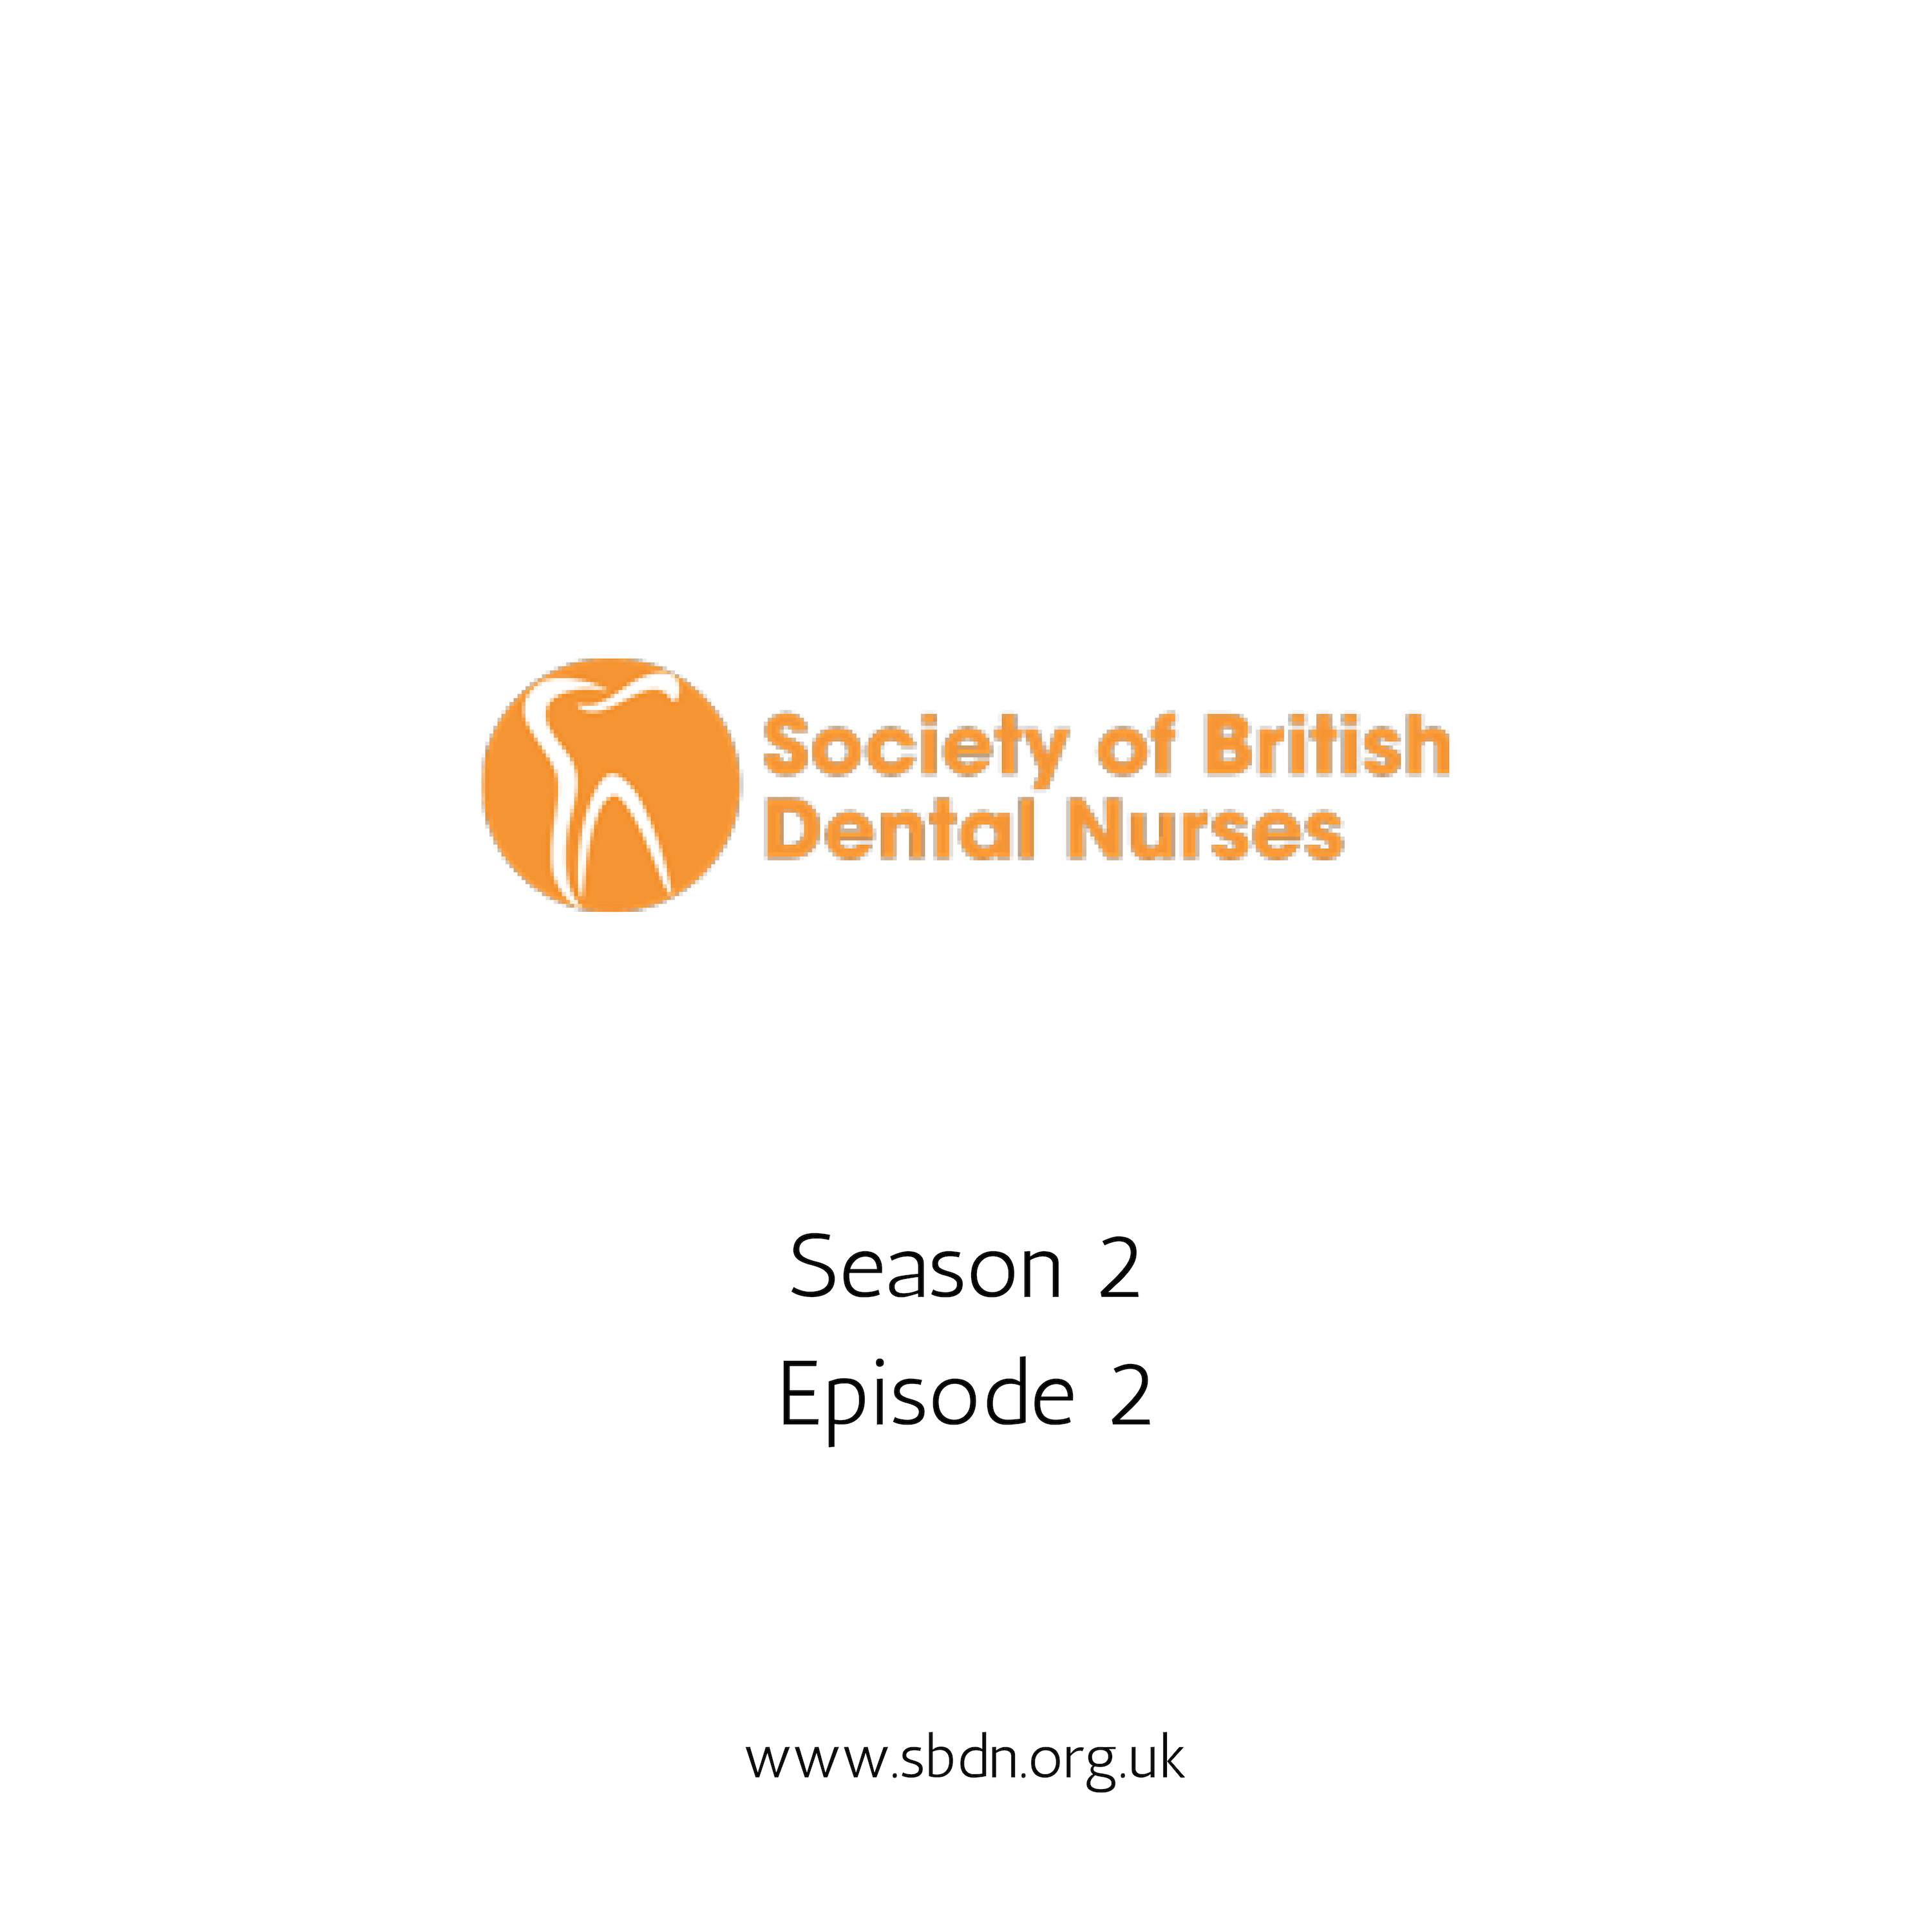 Meet a dental nurse who is starting out in practice management